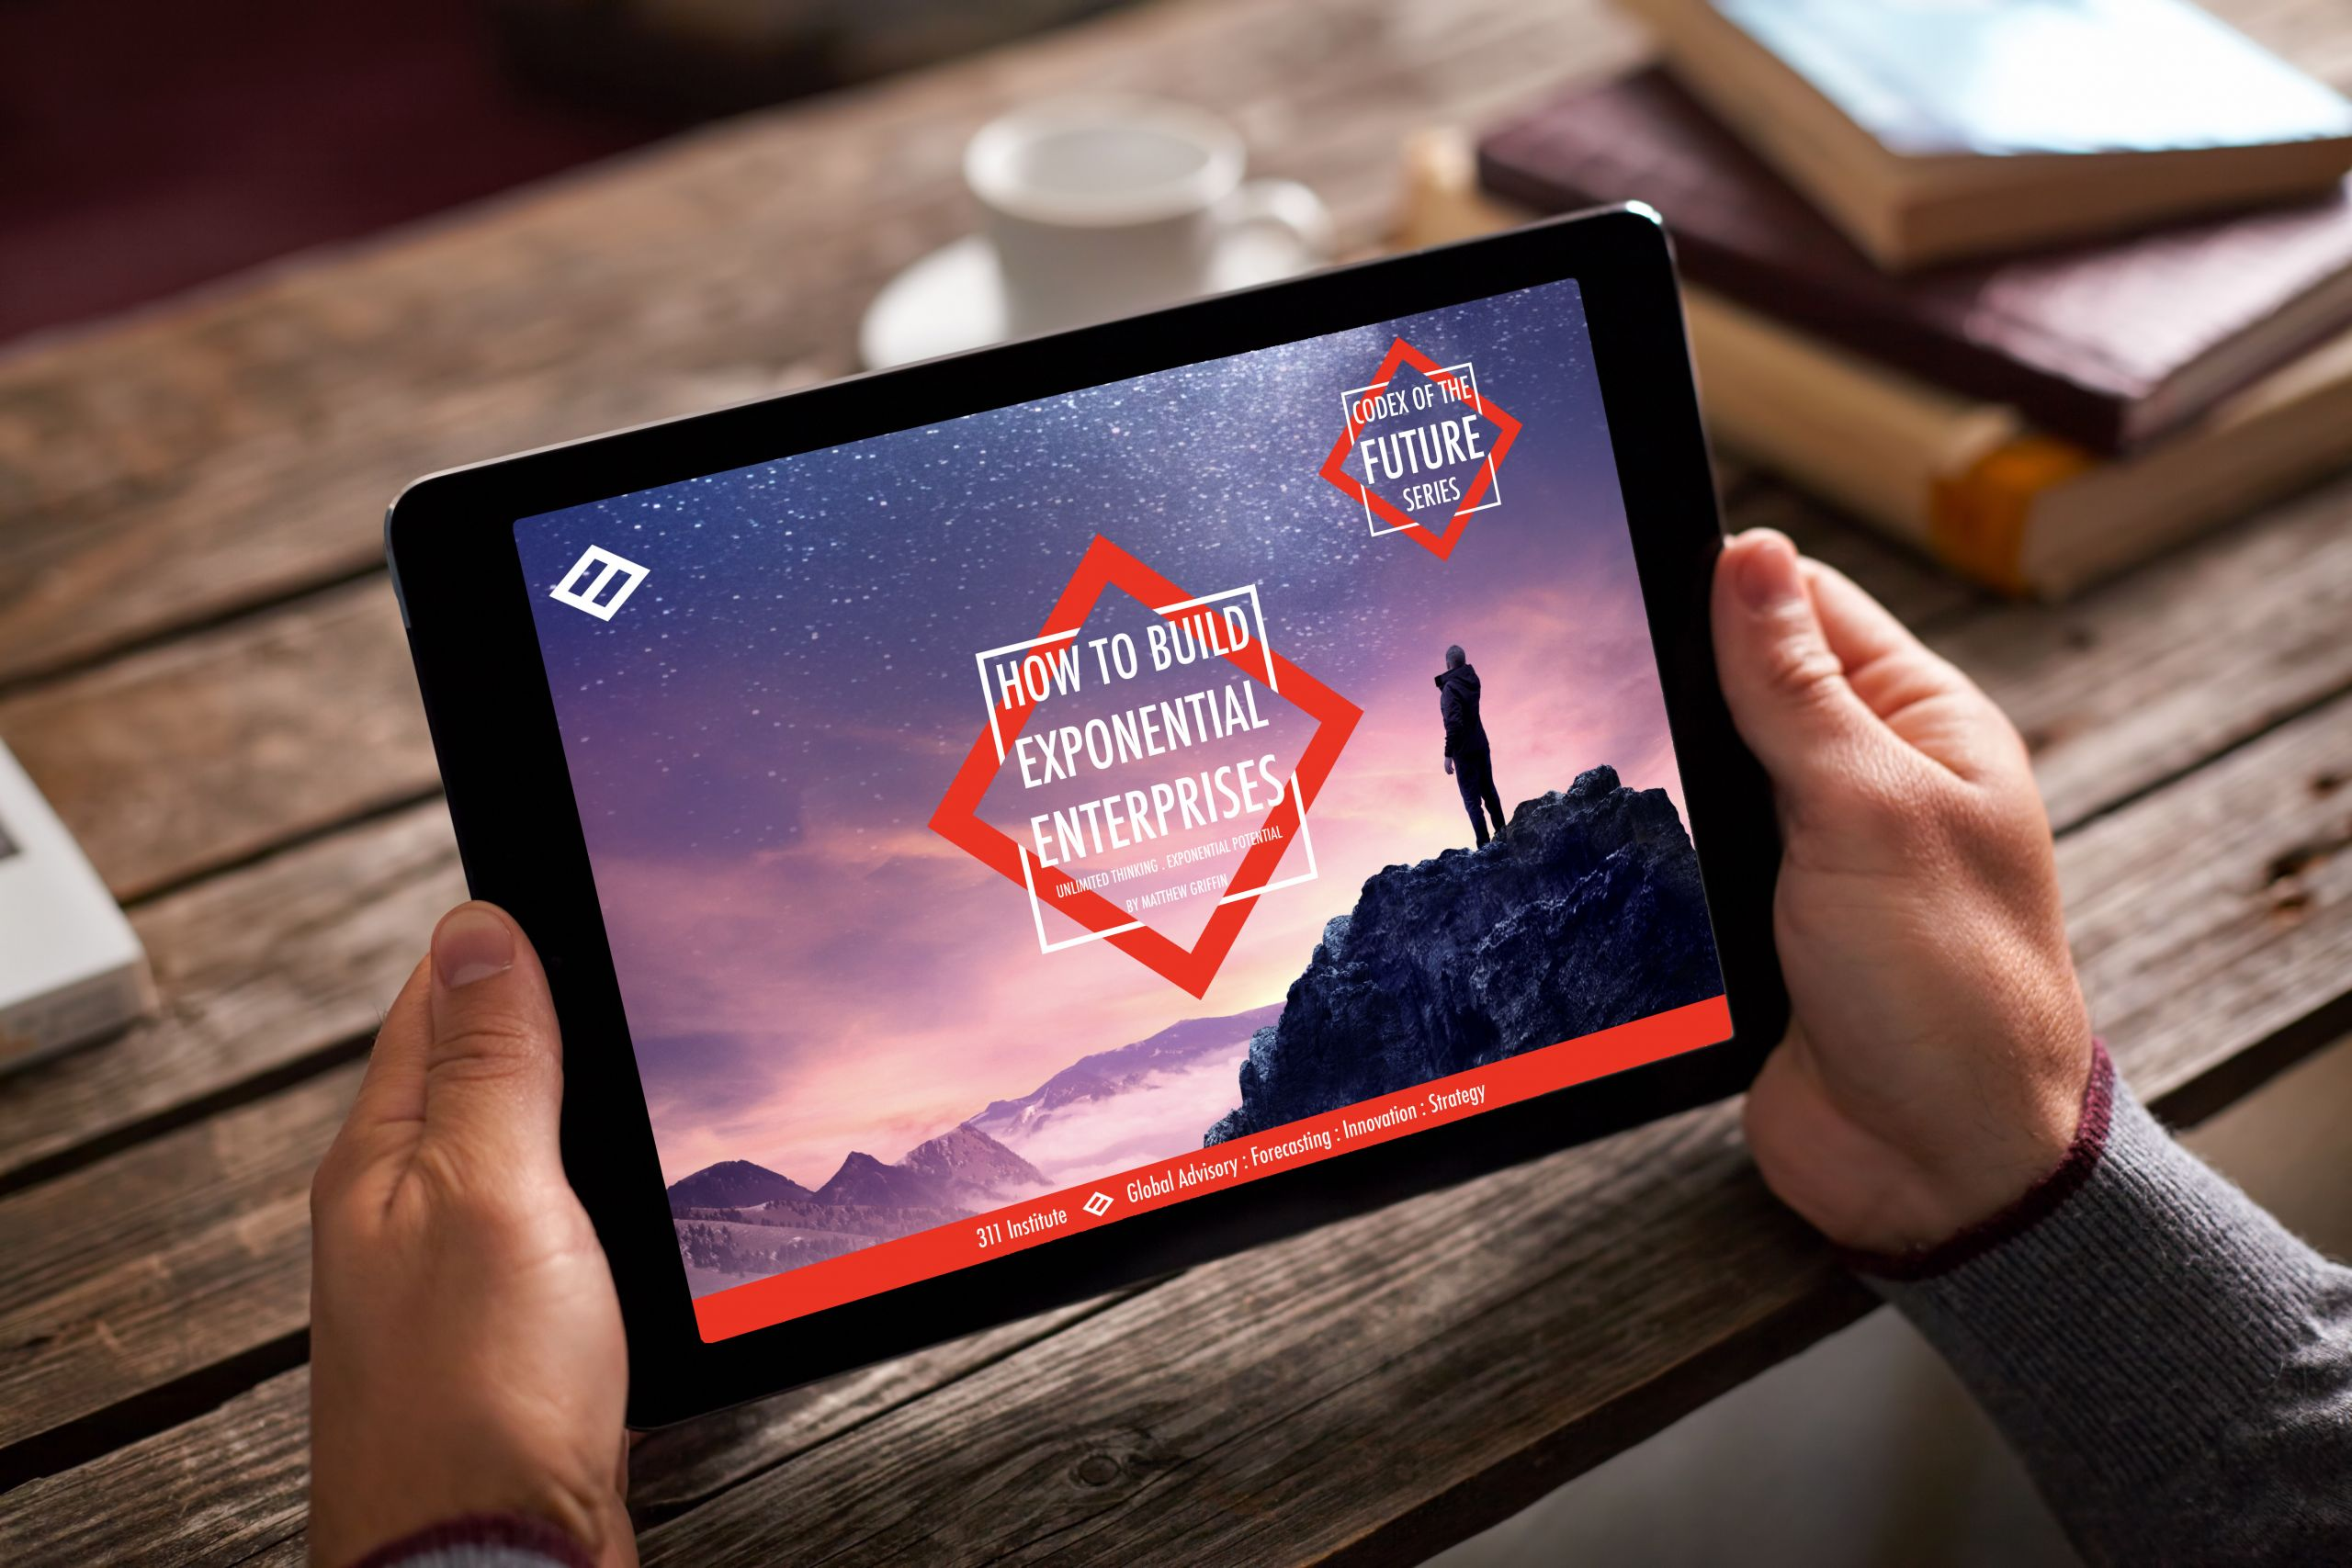 How to build Exponential Enterprises On IPad